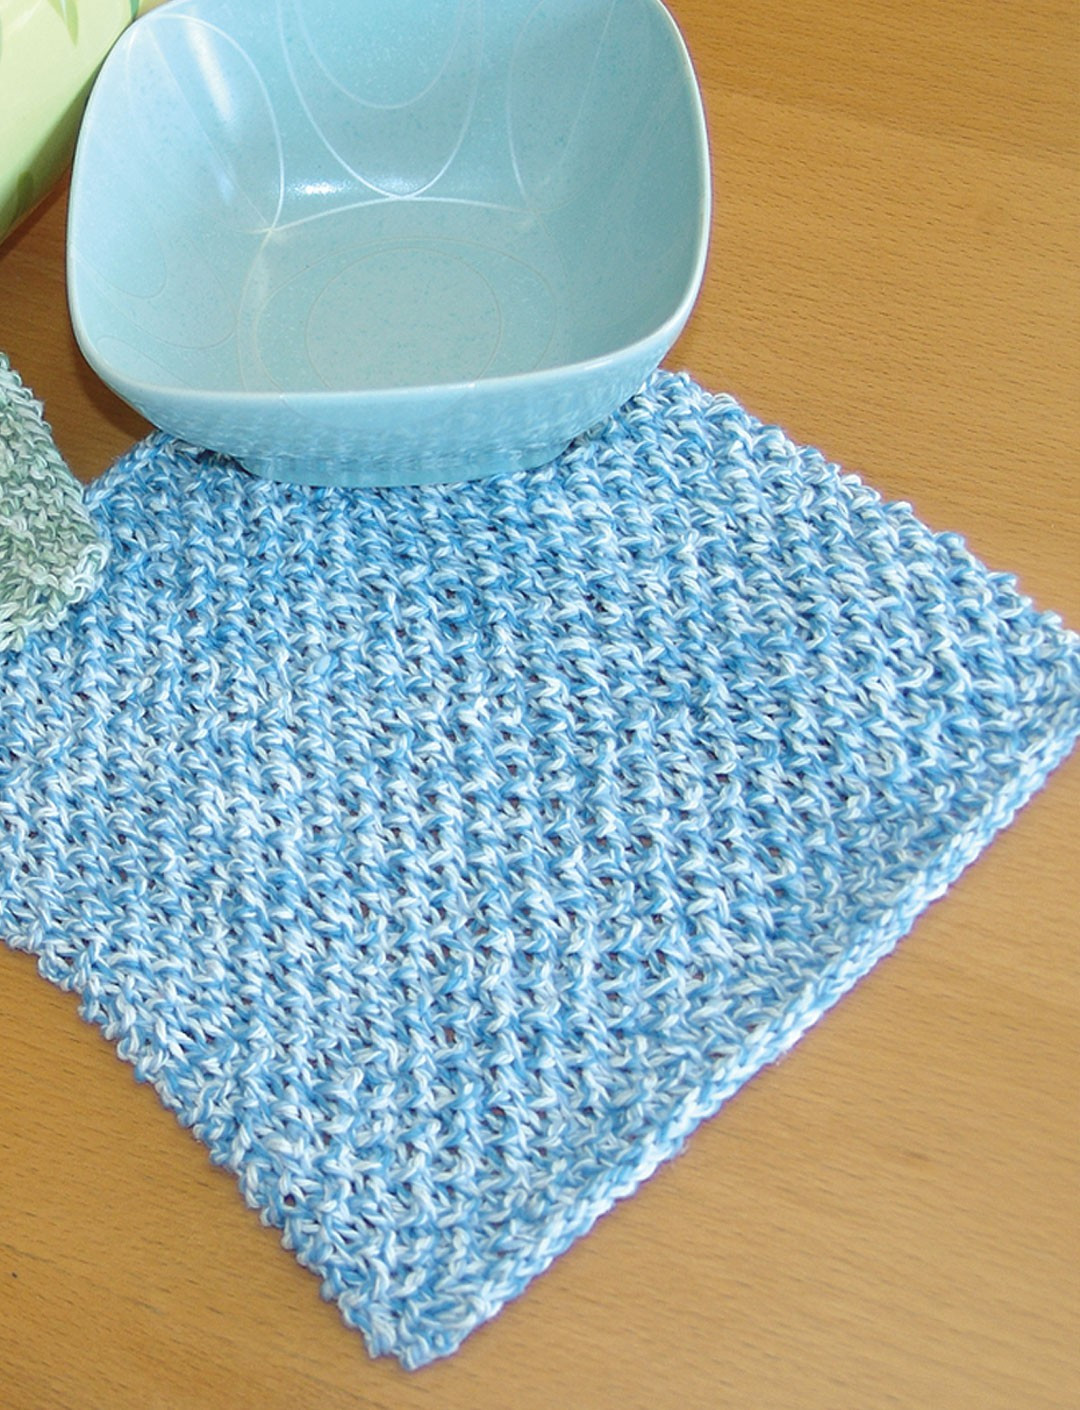 Lily Sugar N Cream Patterns Best Of Dishcloth In Lily Sugar and Cream Twists Of Perfect 45 Ideas Lily Sugar N Cream Patterns